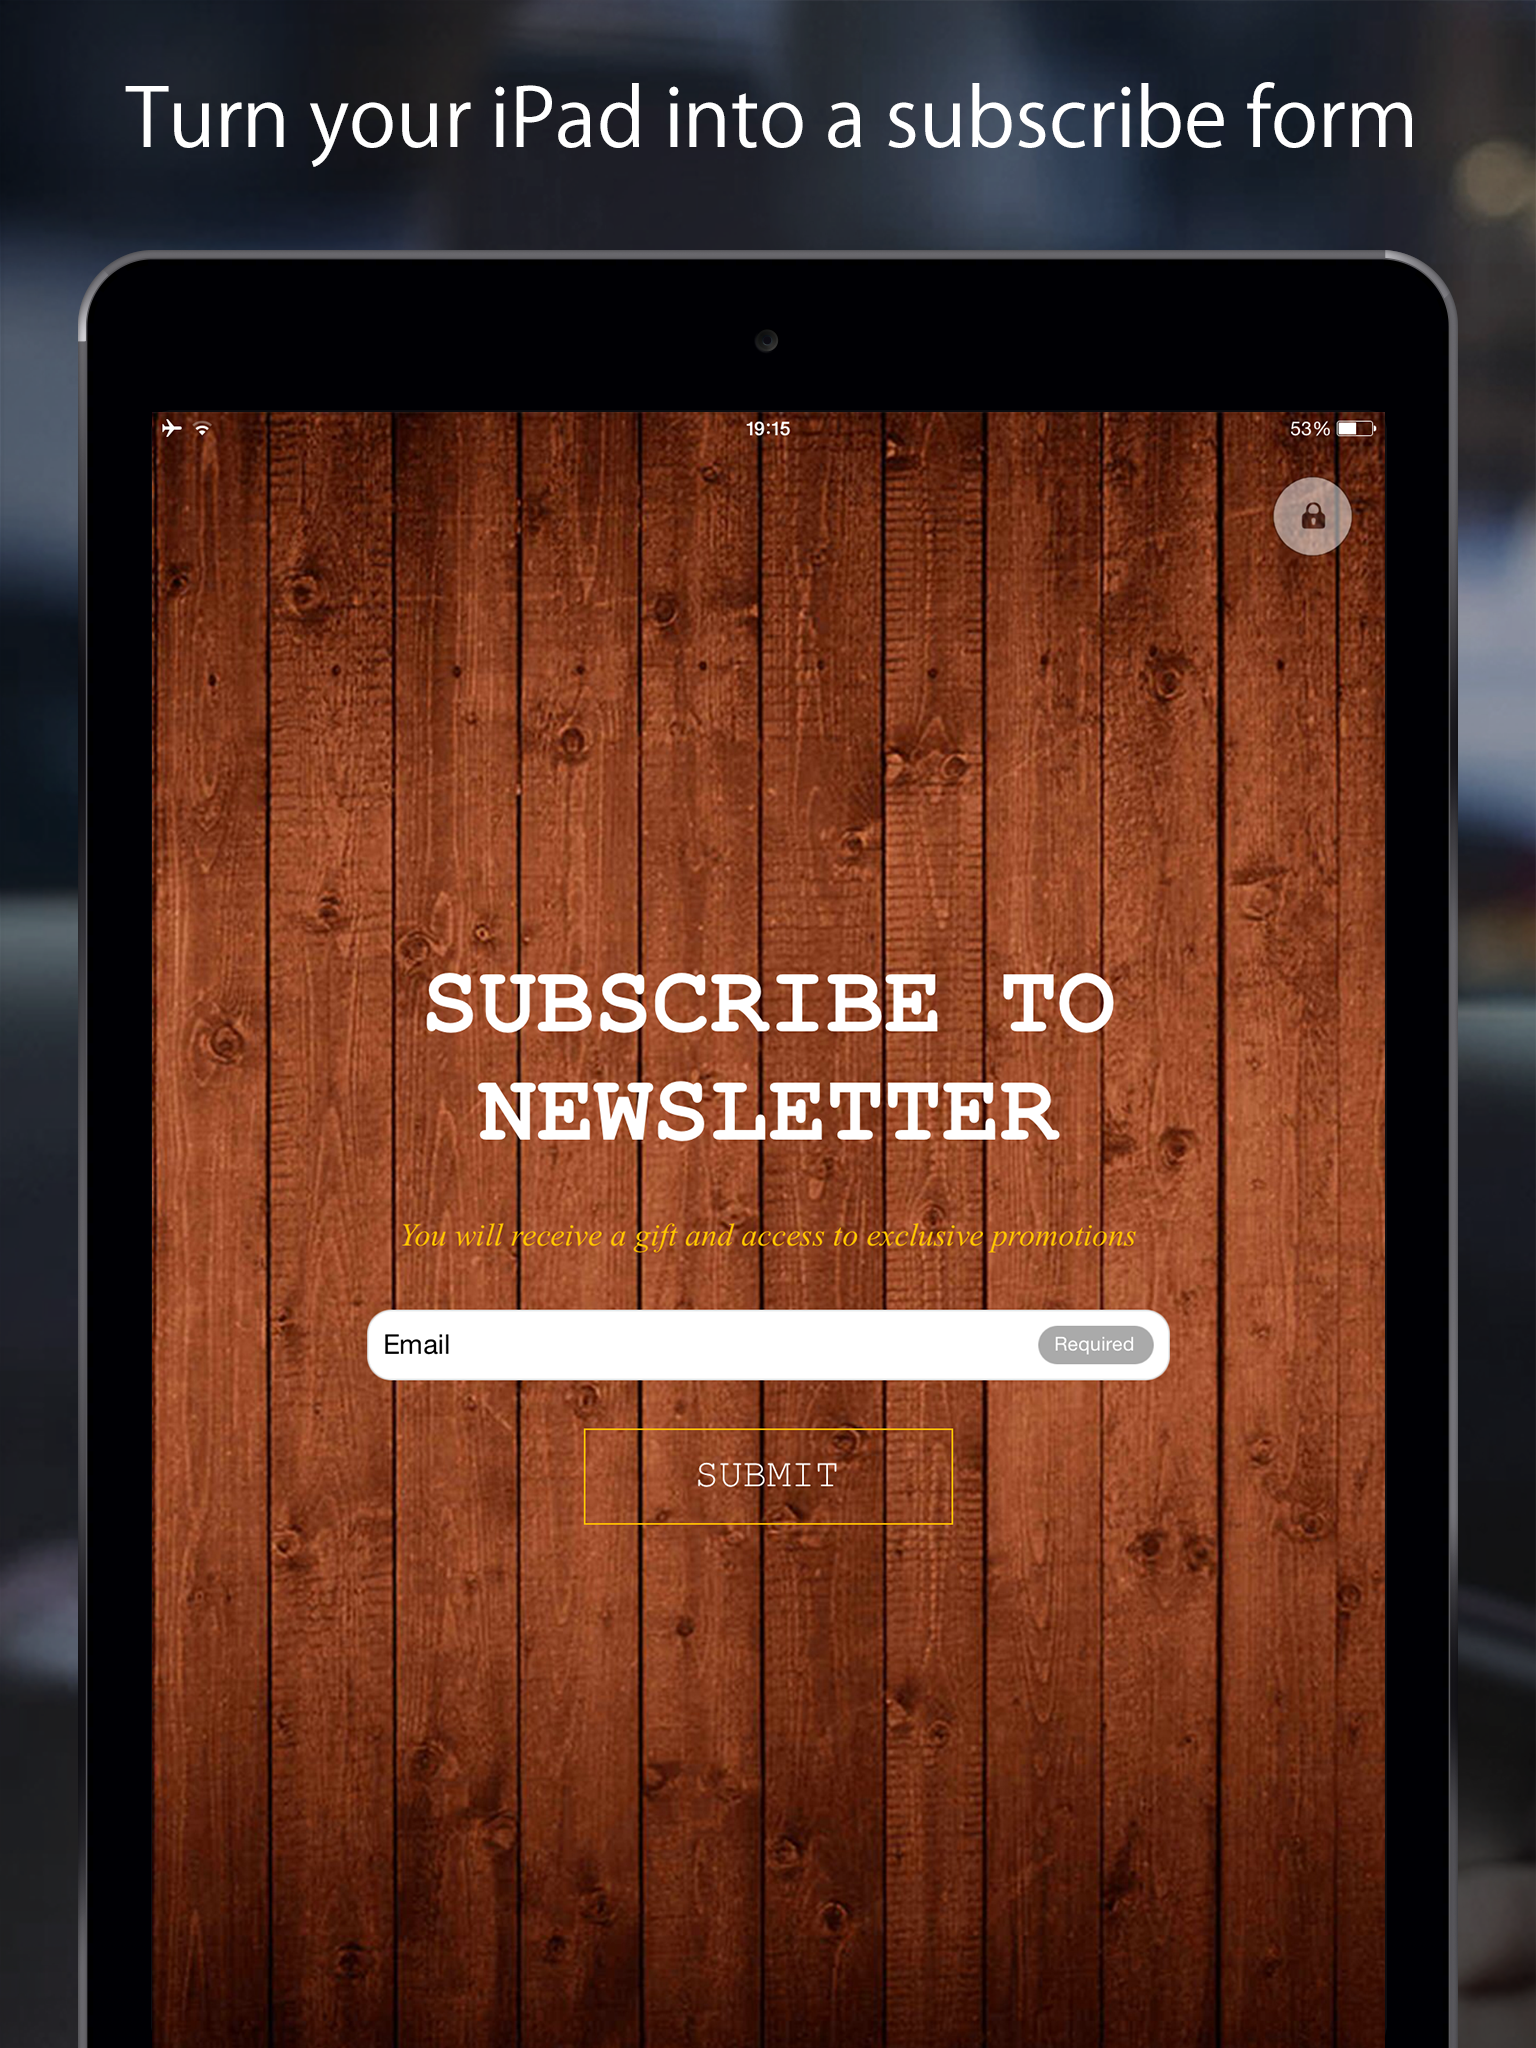 FreshForm is an app for iOS and Android for collecting email addresses